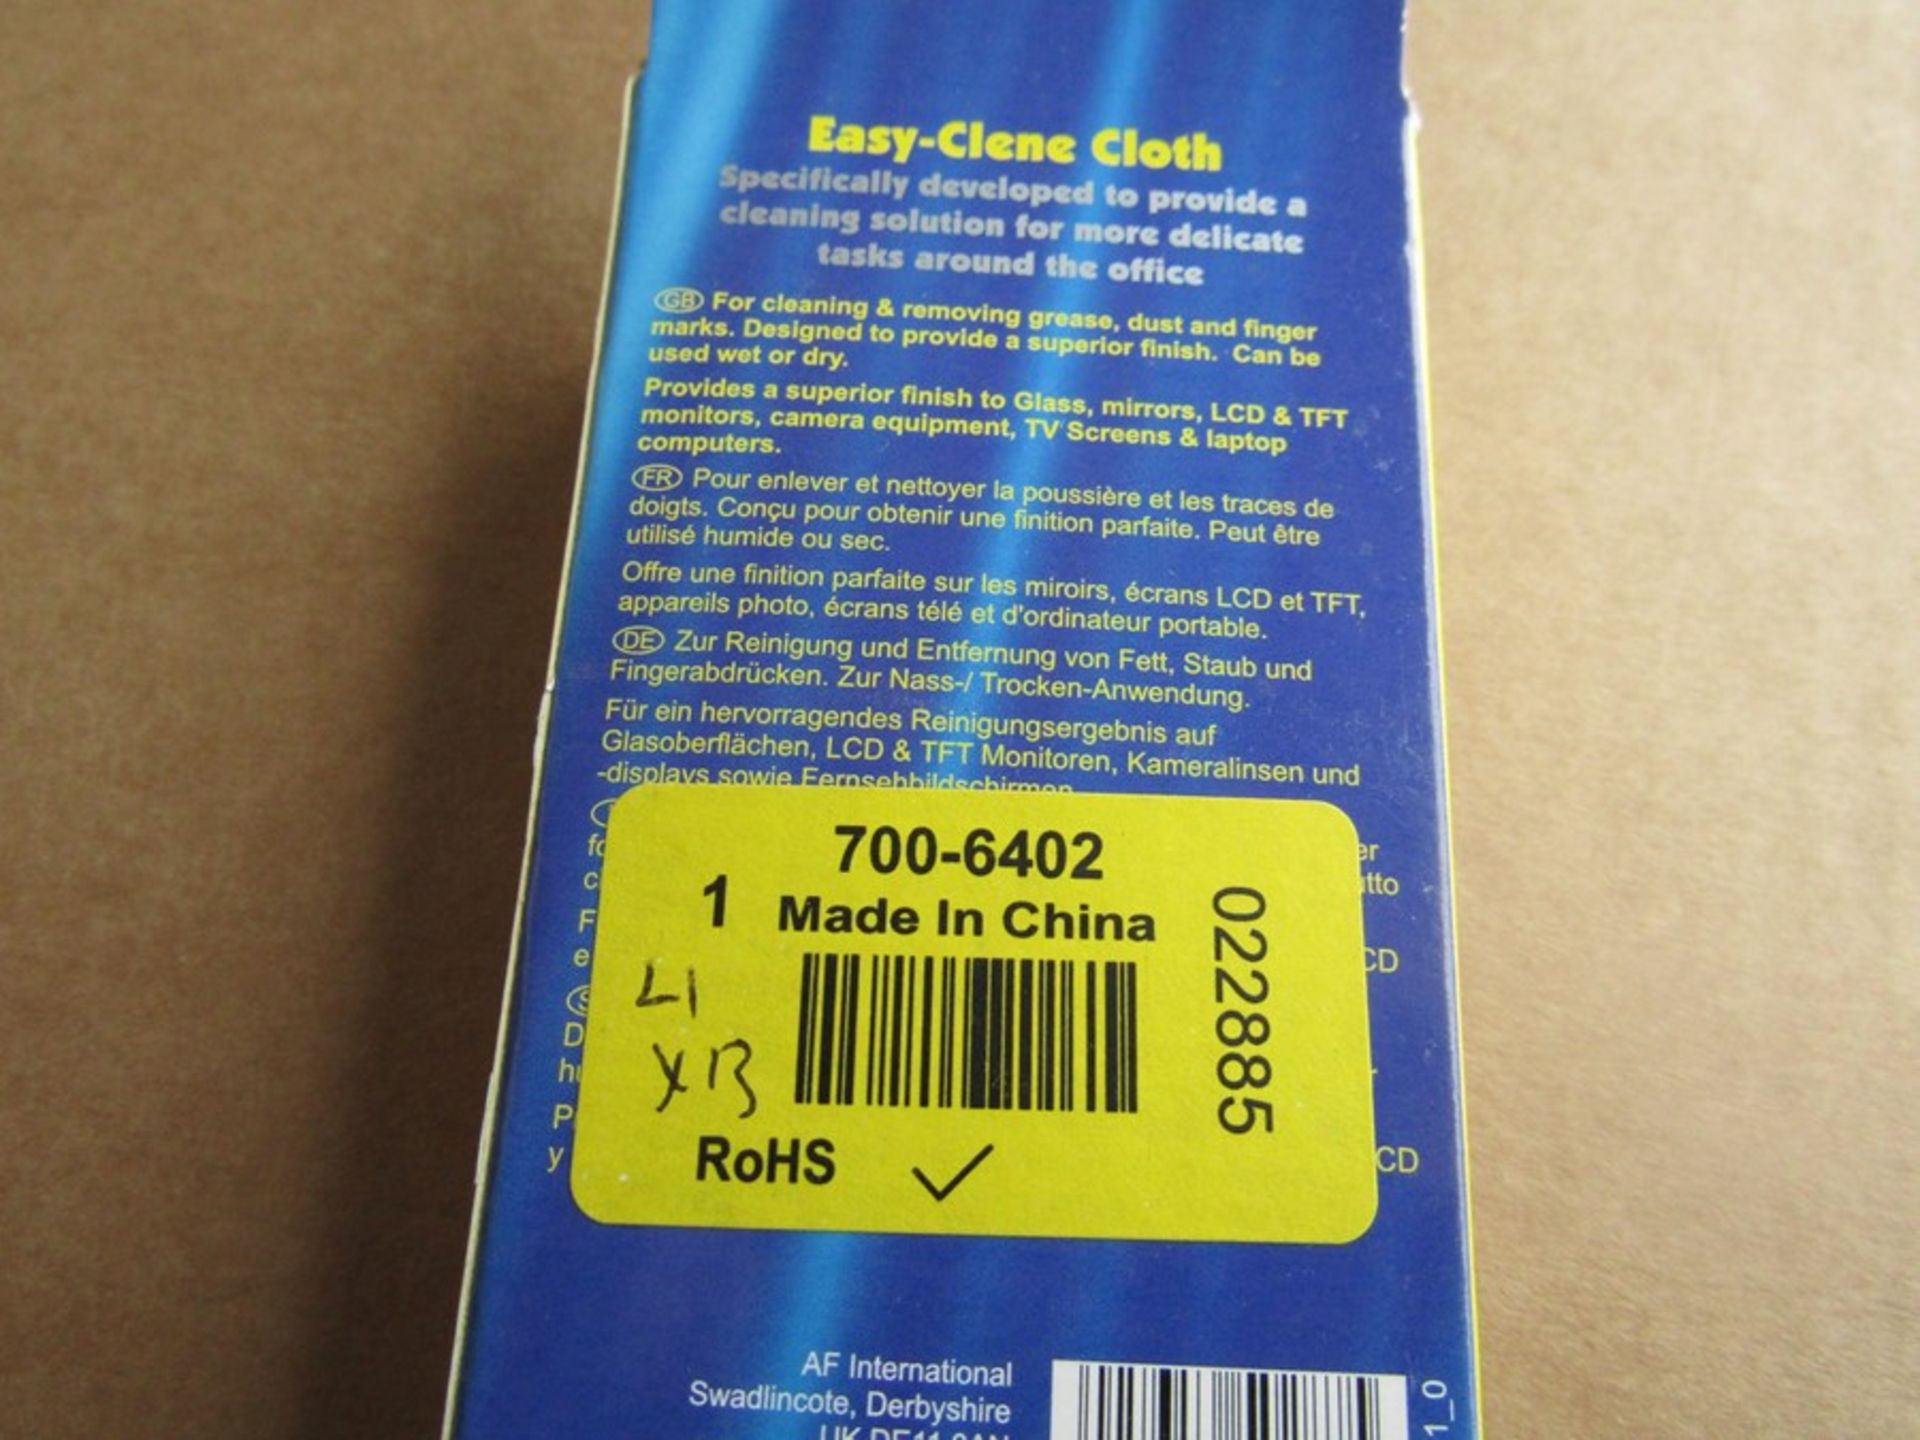 13 x AF Pack of 1 Blue Easy-Clene Multi-purpose Wipes for General Cleaning, Office Use - Image 3 of 3